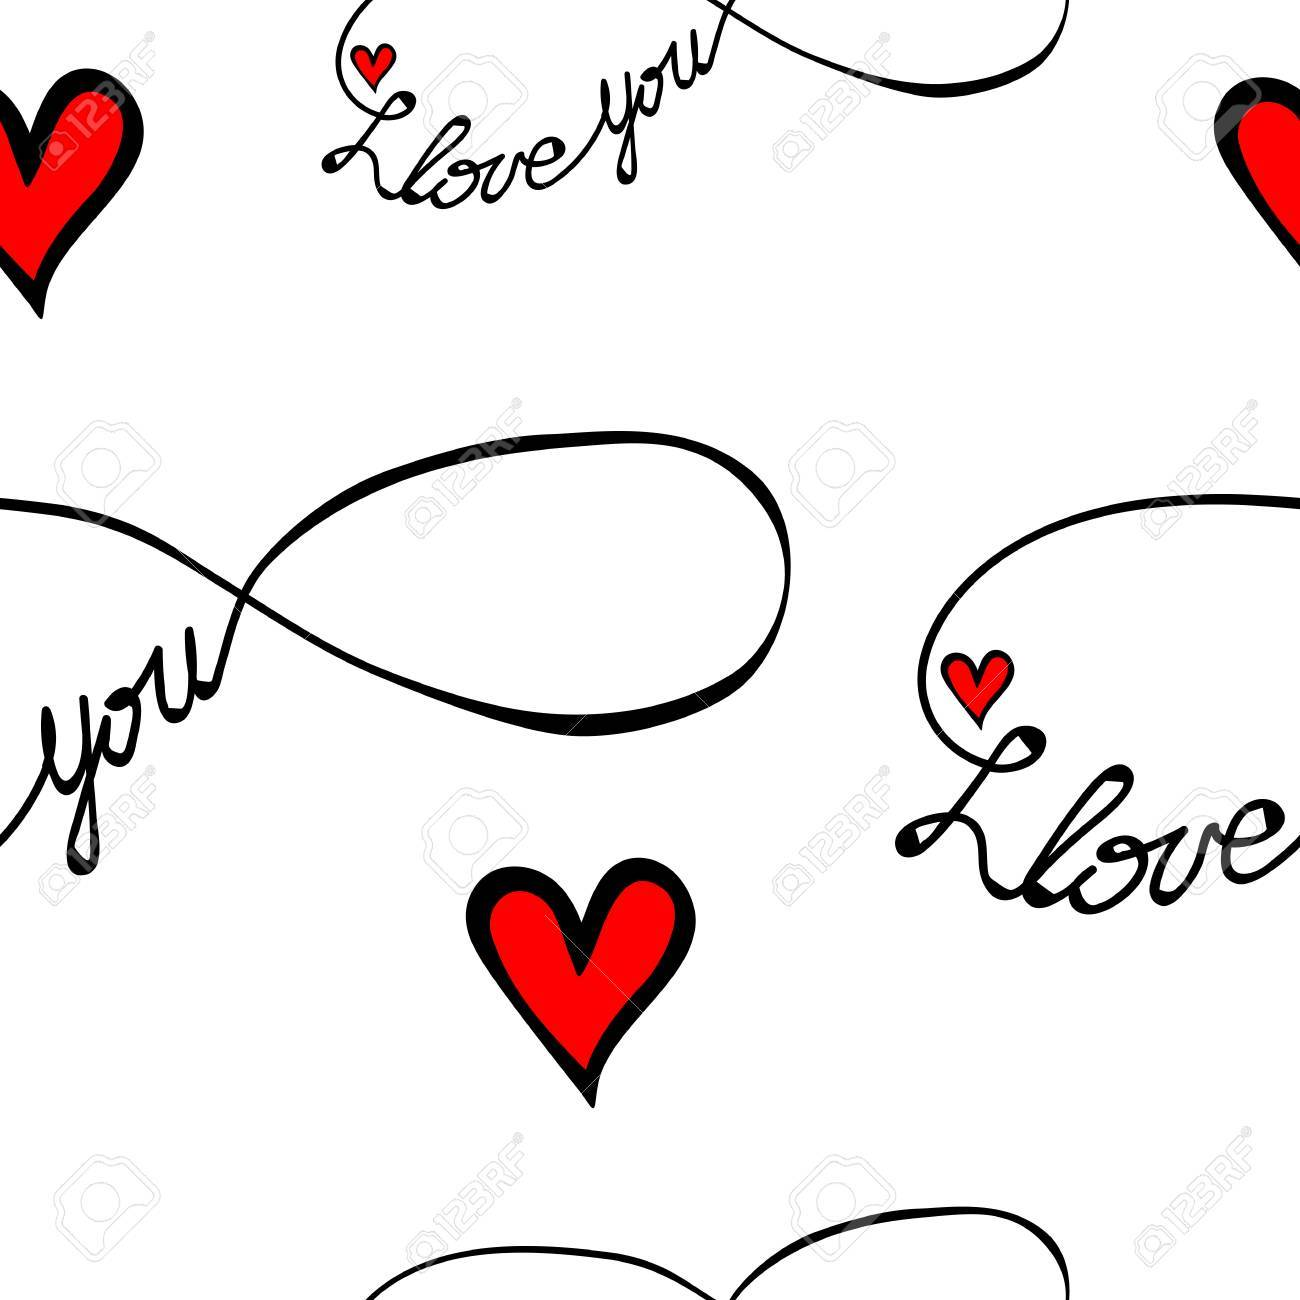 Seamless pattern with i love you text in infinity form isolated seamless pattern with i love you text in infinity form isolated on the white background buycottarizona